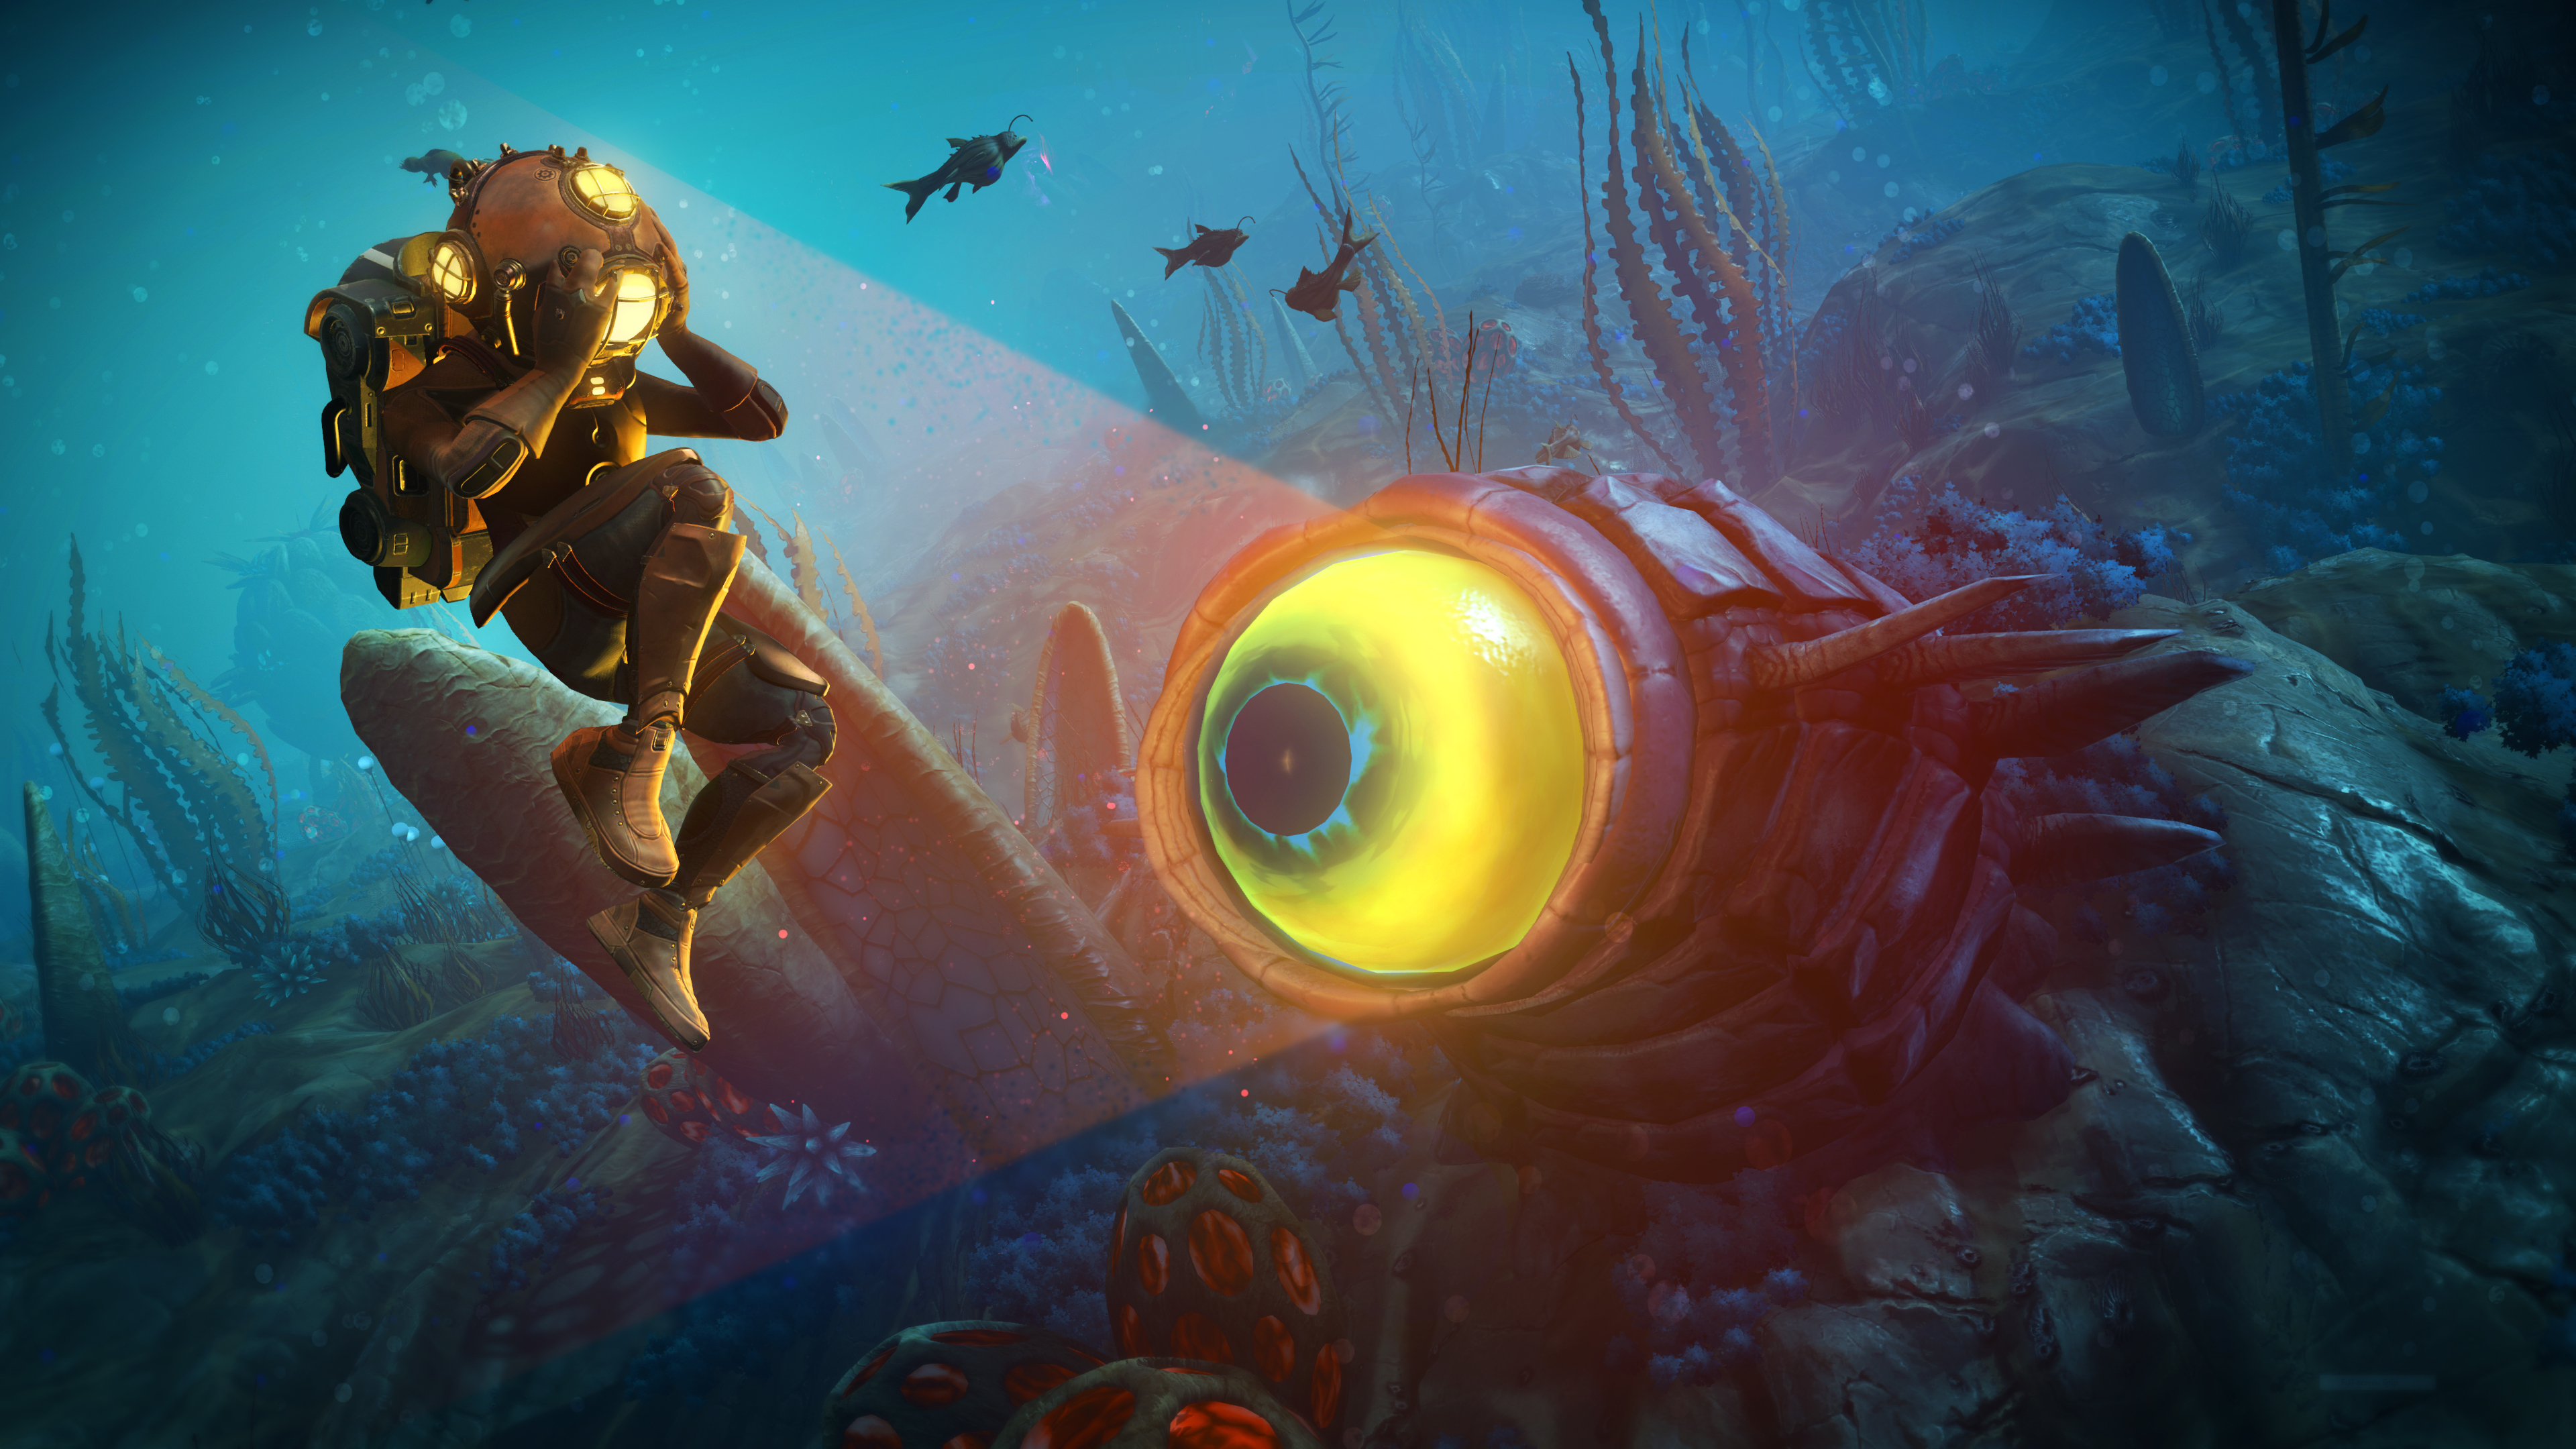 No Man's Sky's 'The Abyss' update adds sea monsters and submarines